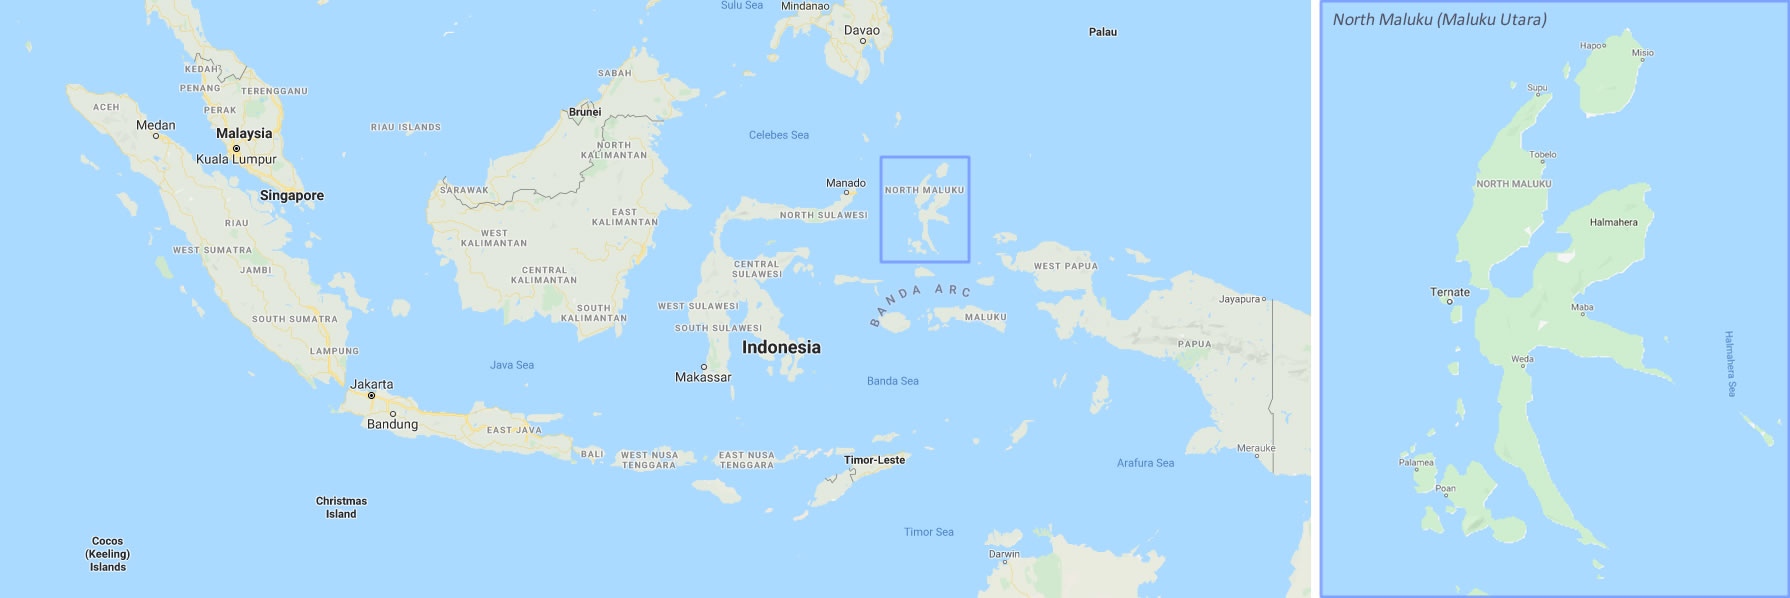 Ternate is located in the northeastern part of the Indonesian archipelago, about midway between the Philippines and Papua